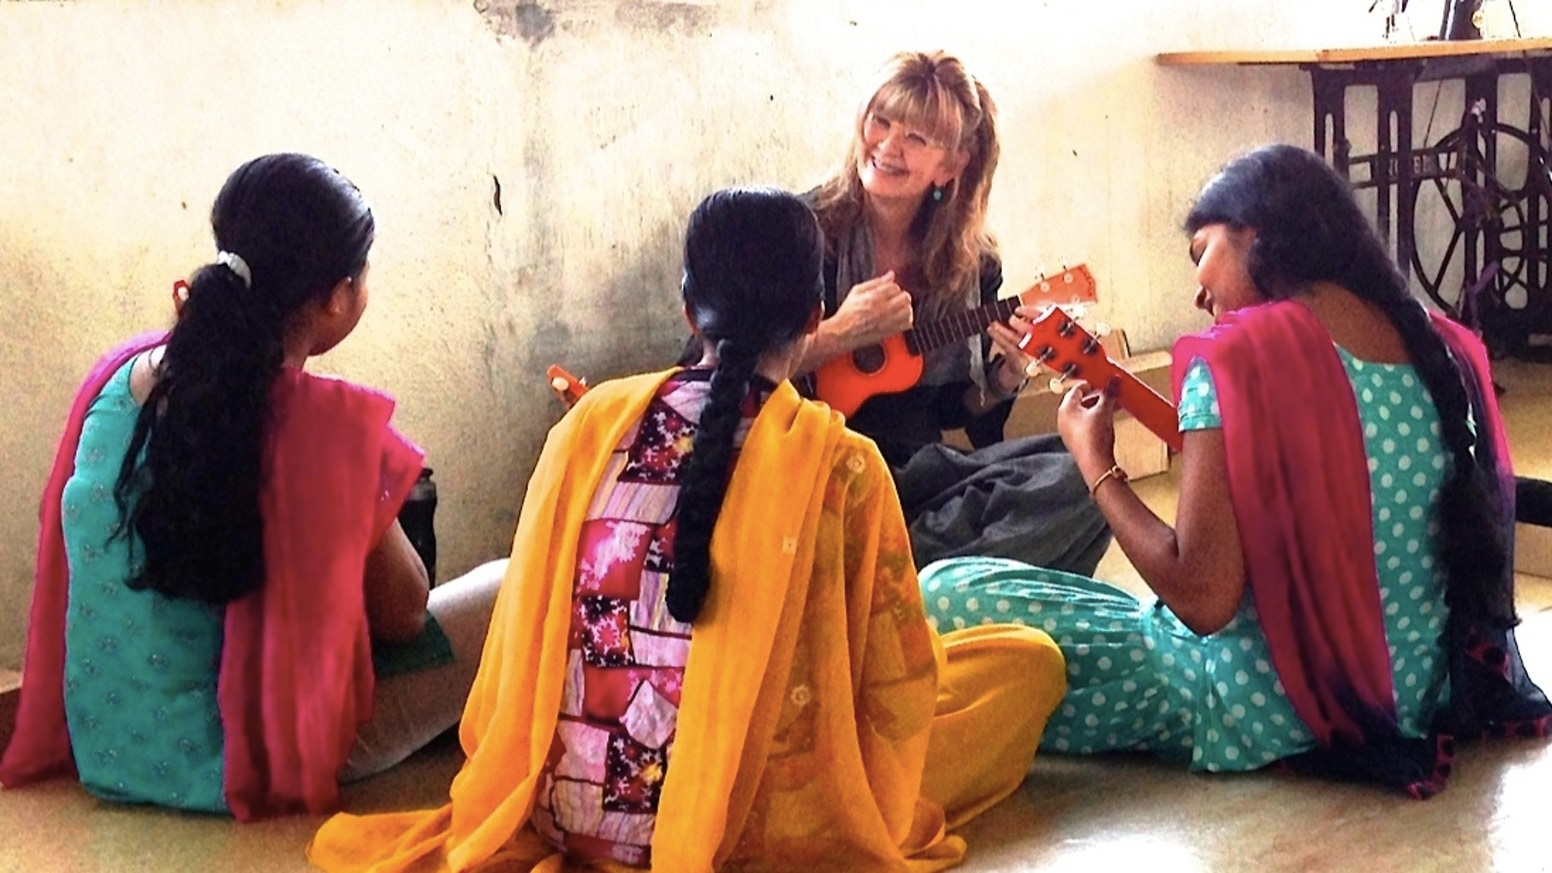 survivor girls in a shelter home in india have learned how to play ukulele -- and now we're making a cd!